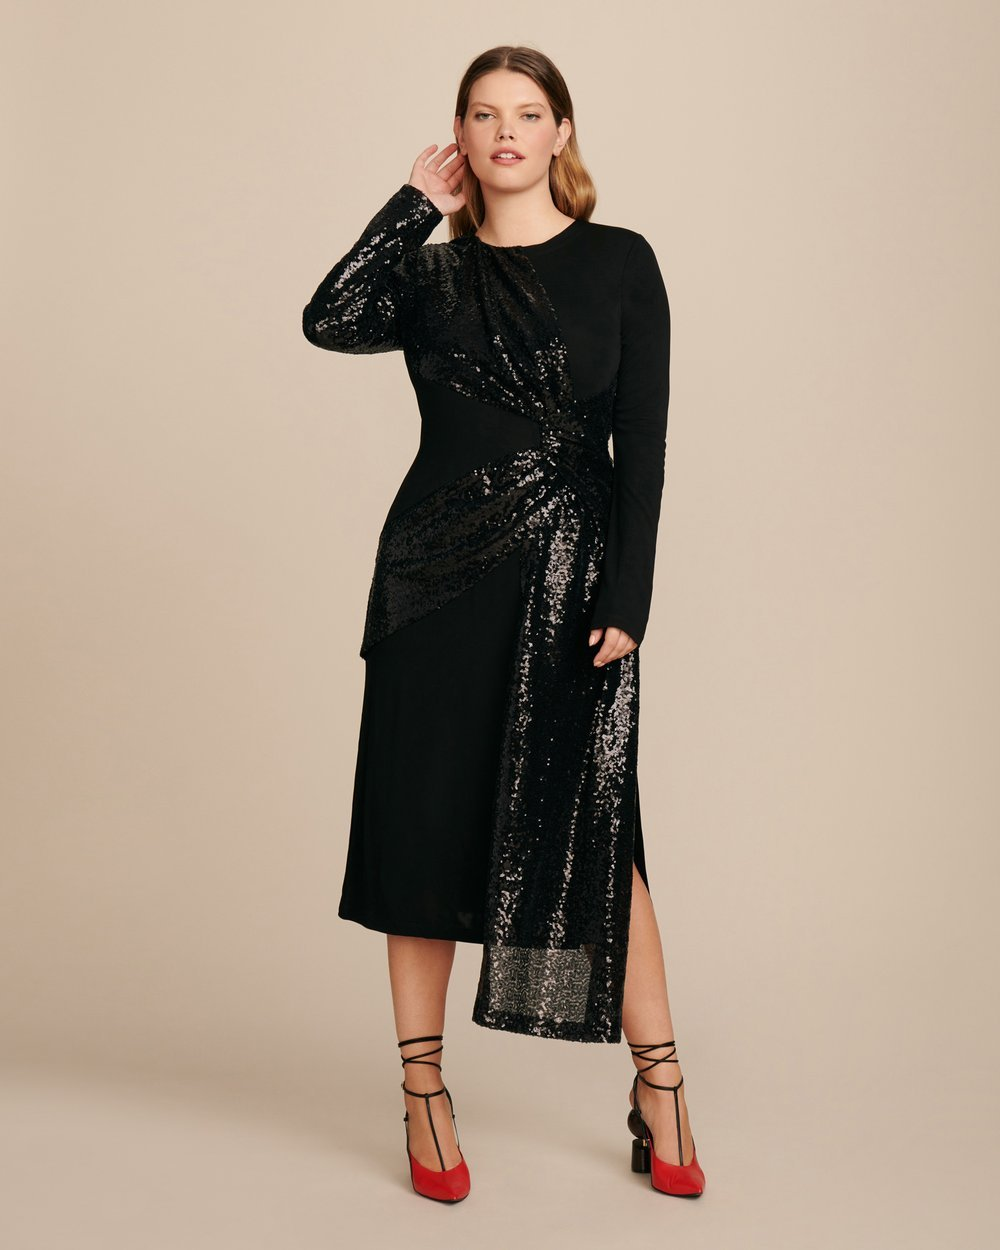 Luxury Plus SIze Fashion Finds at 11 Honore: PRABAL GURUNG Shilu Twist Front Plus Size Dress